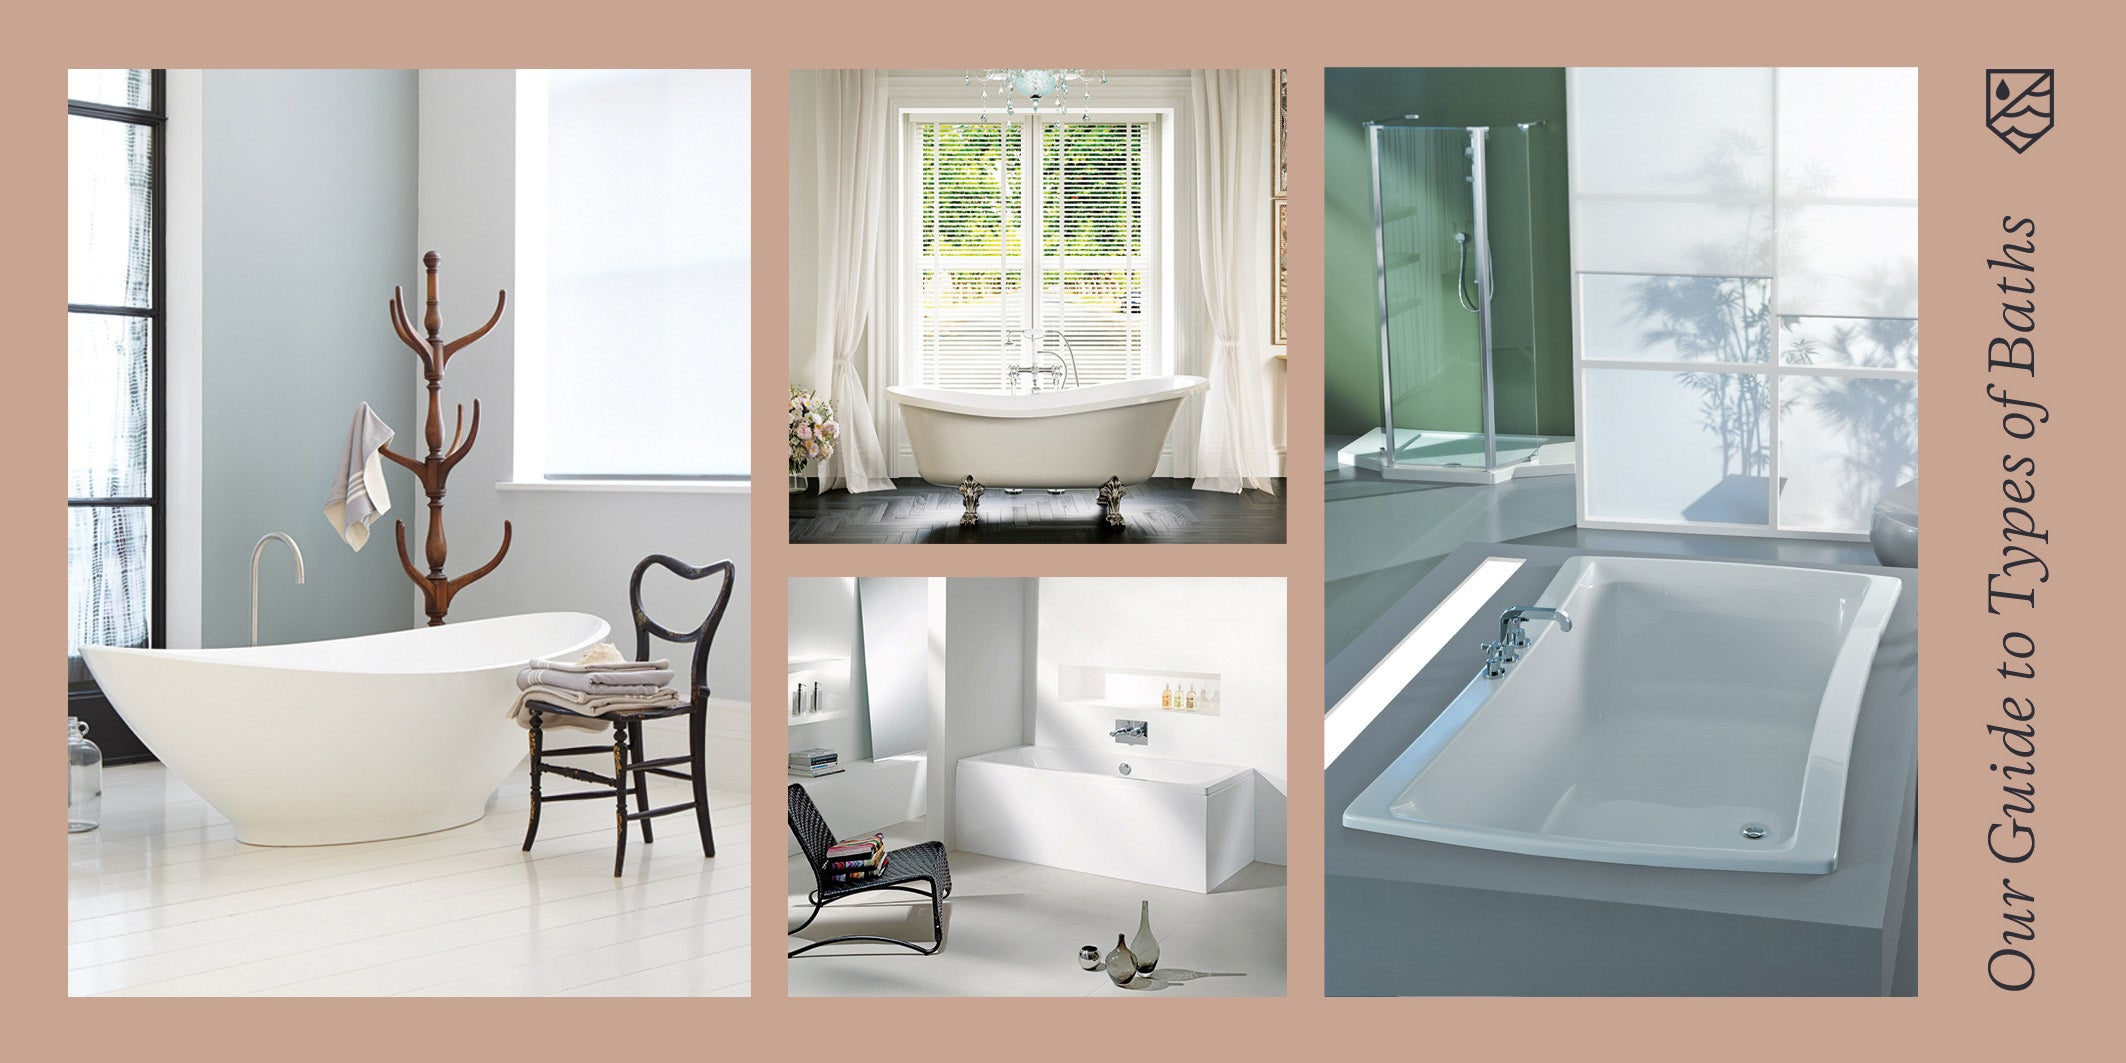 Our Guide to Types of Baths